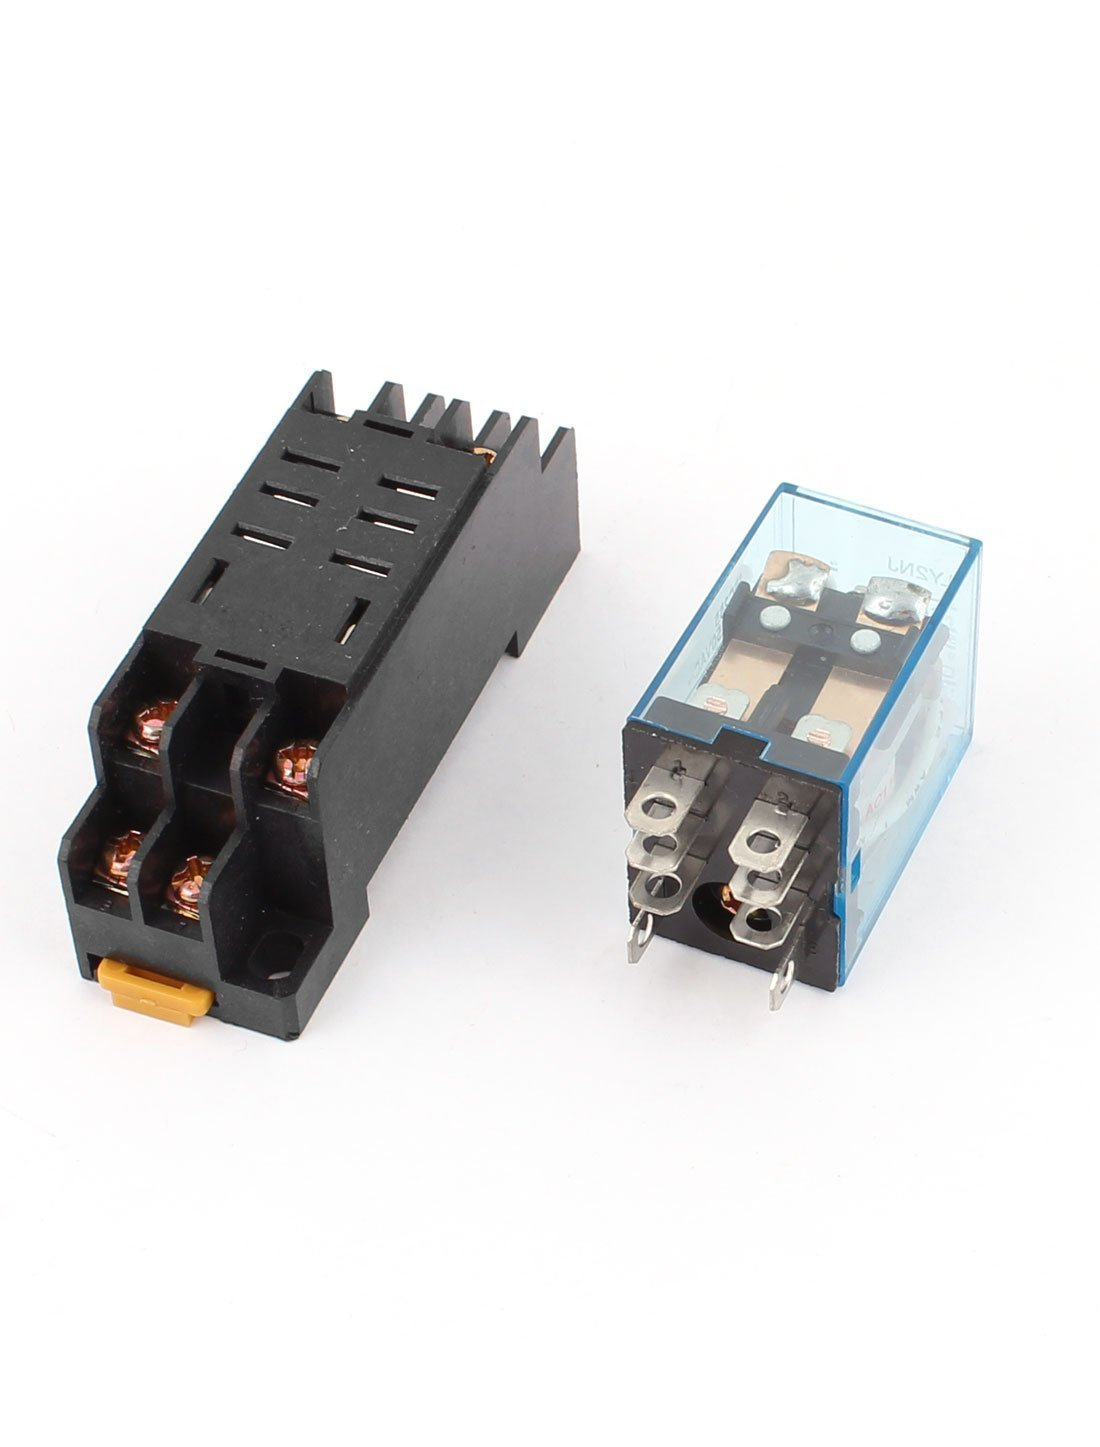 Baomain Ac 12v Coil Power Relay 10a Dpdt Ly2nj With Spdt 5a Ptf08a Socket Base Home Improvement